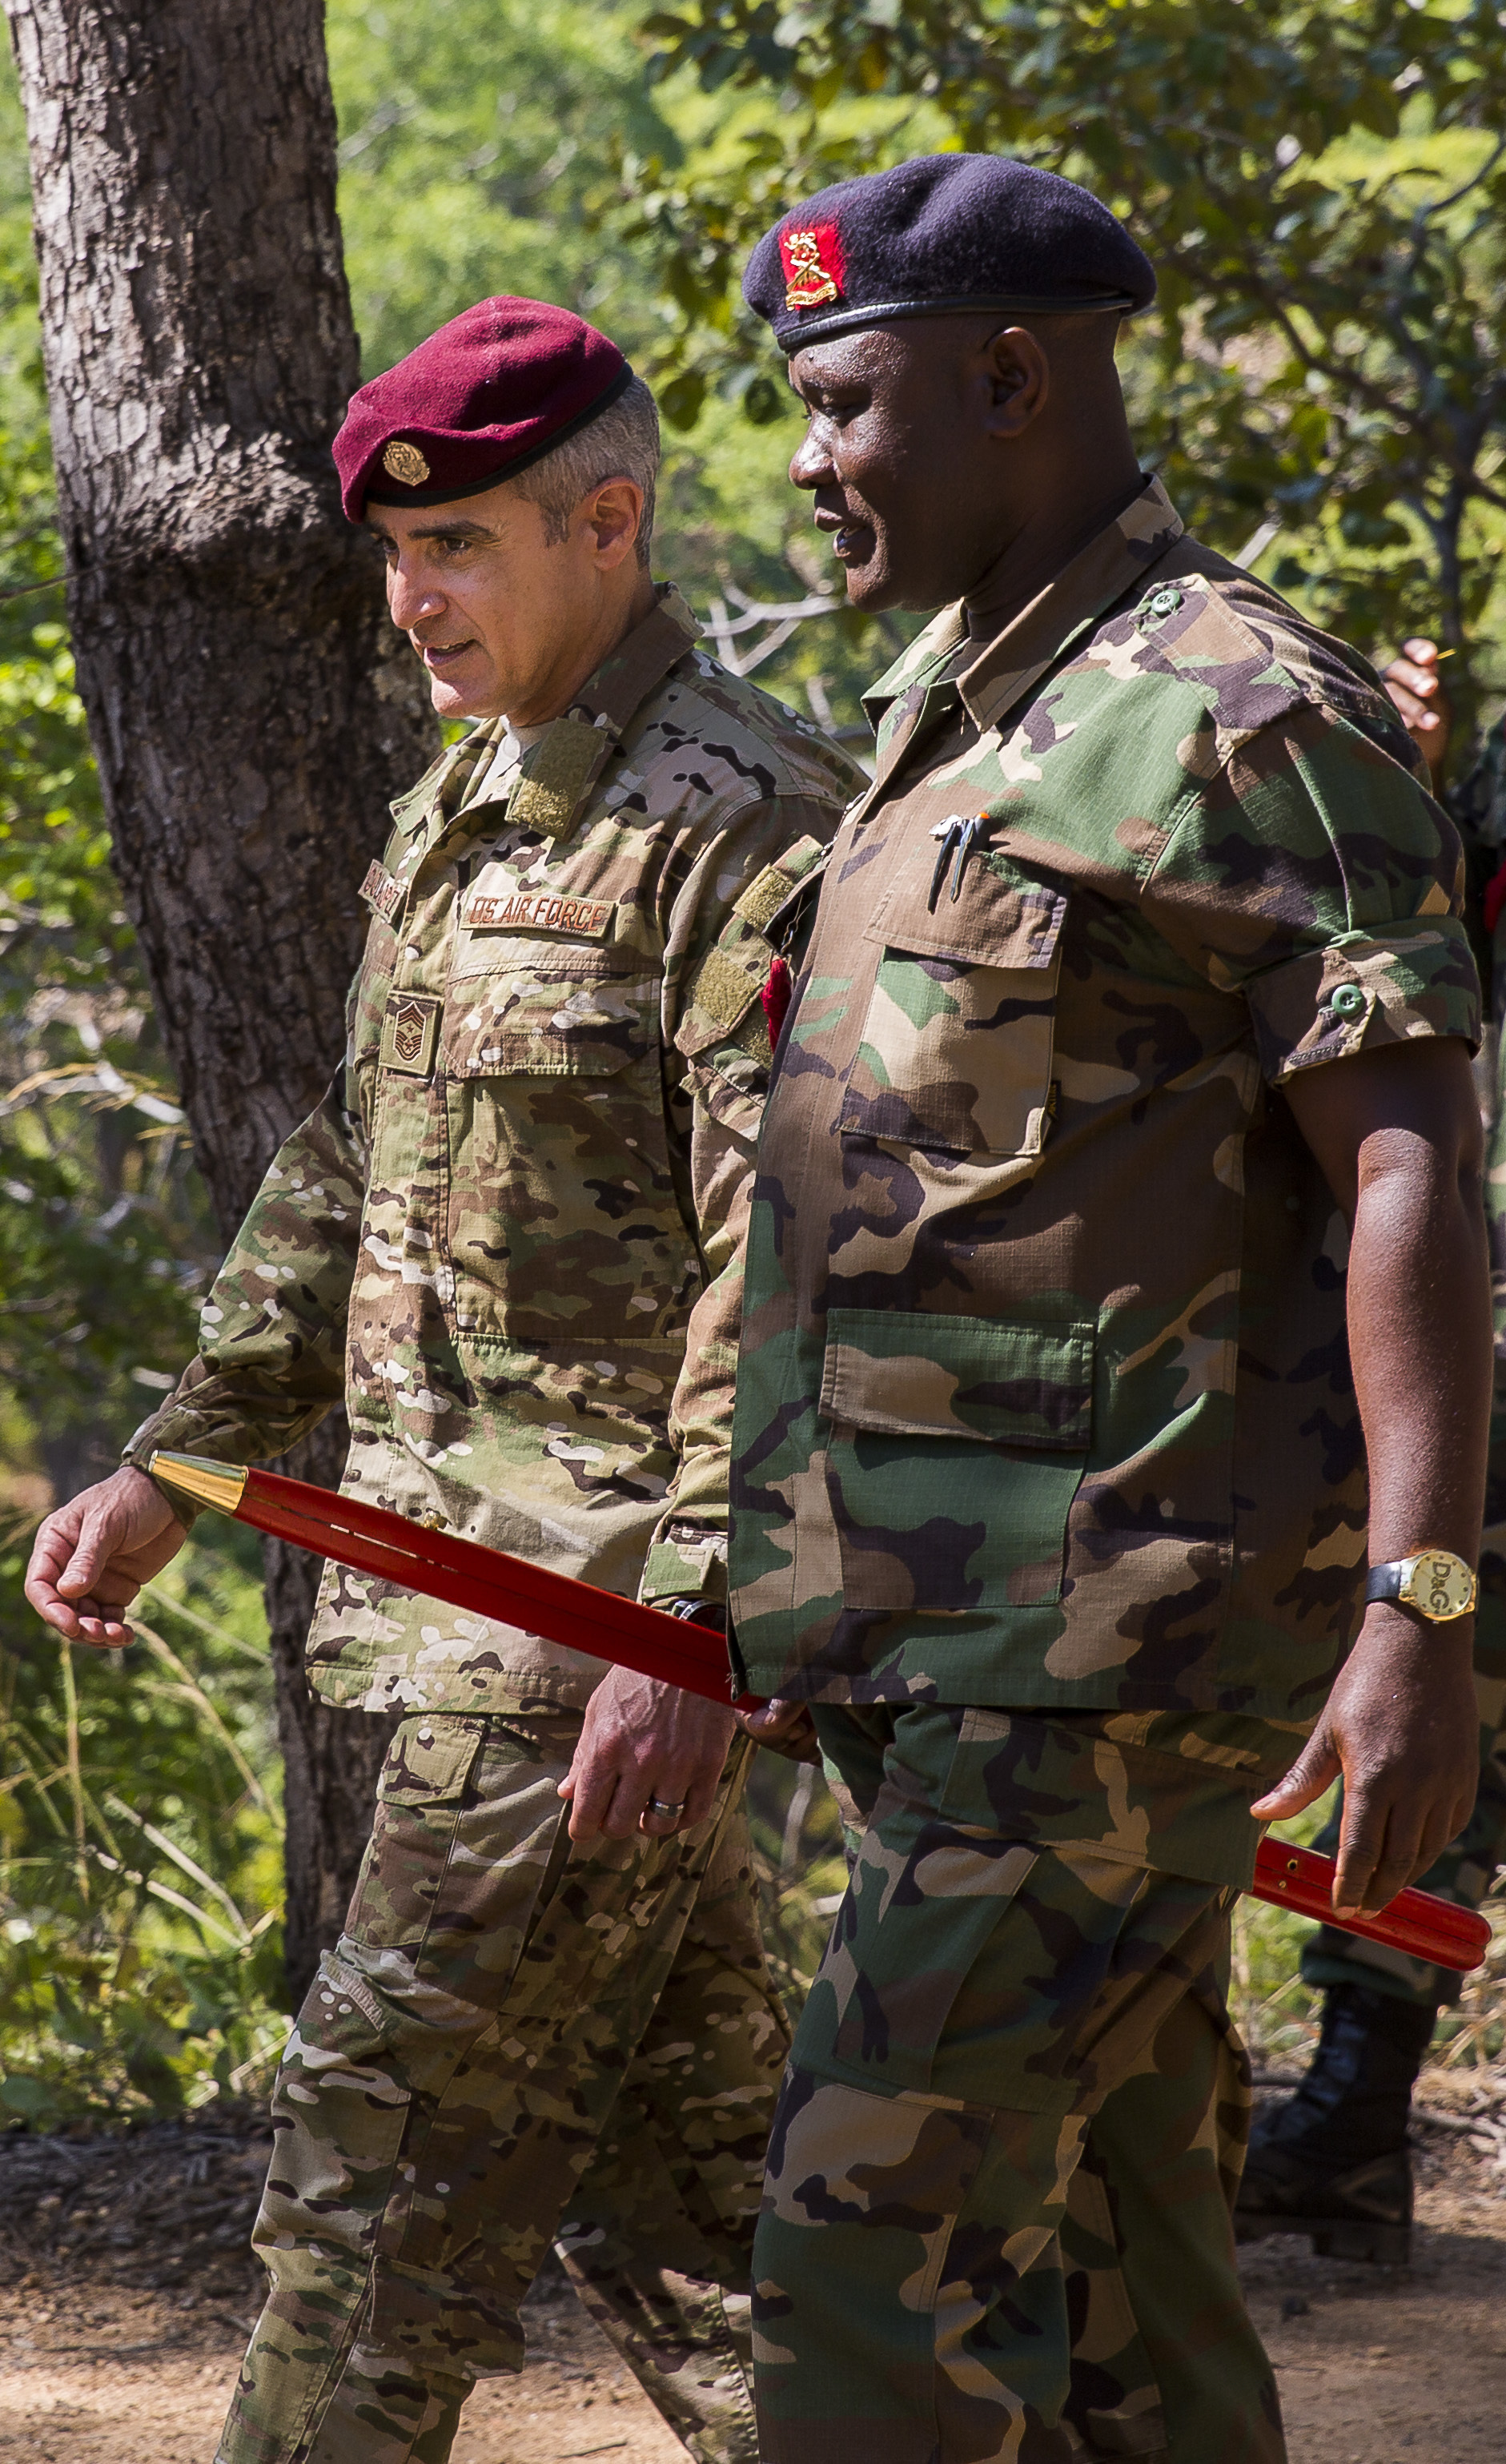 U.S. Africa Command Senior Enlisted Leader Command Chief Master Sgt. Ramon Colon-Lopez walks with Malawi Defence Force's Senior Enlisted Leader Warrant Officer First Class George Bisalomu to observe the final Malawi Battalion Training Course exercise before graduation, May 31, 2018. Colon-Lopez travelled to Malawi to meet with the Malawi Defence Force, engaging with both senior officer and enlisted leadership as part of a three-day tour. The visit included a follow-up on issues addressed by the MDF during the Africa Senior Enlisted Leader Conference in November 2017, as well as assess the MDF's capability to train and sustain Peace Keeping Operations Forces.